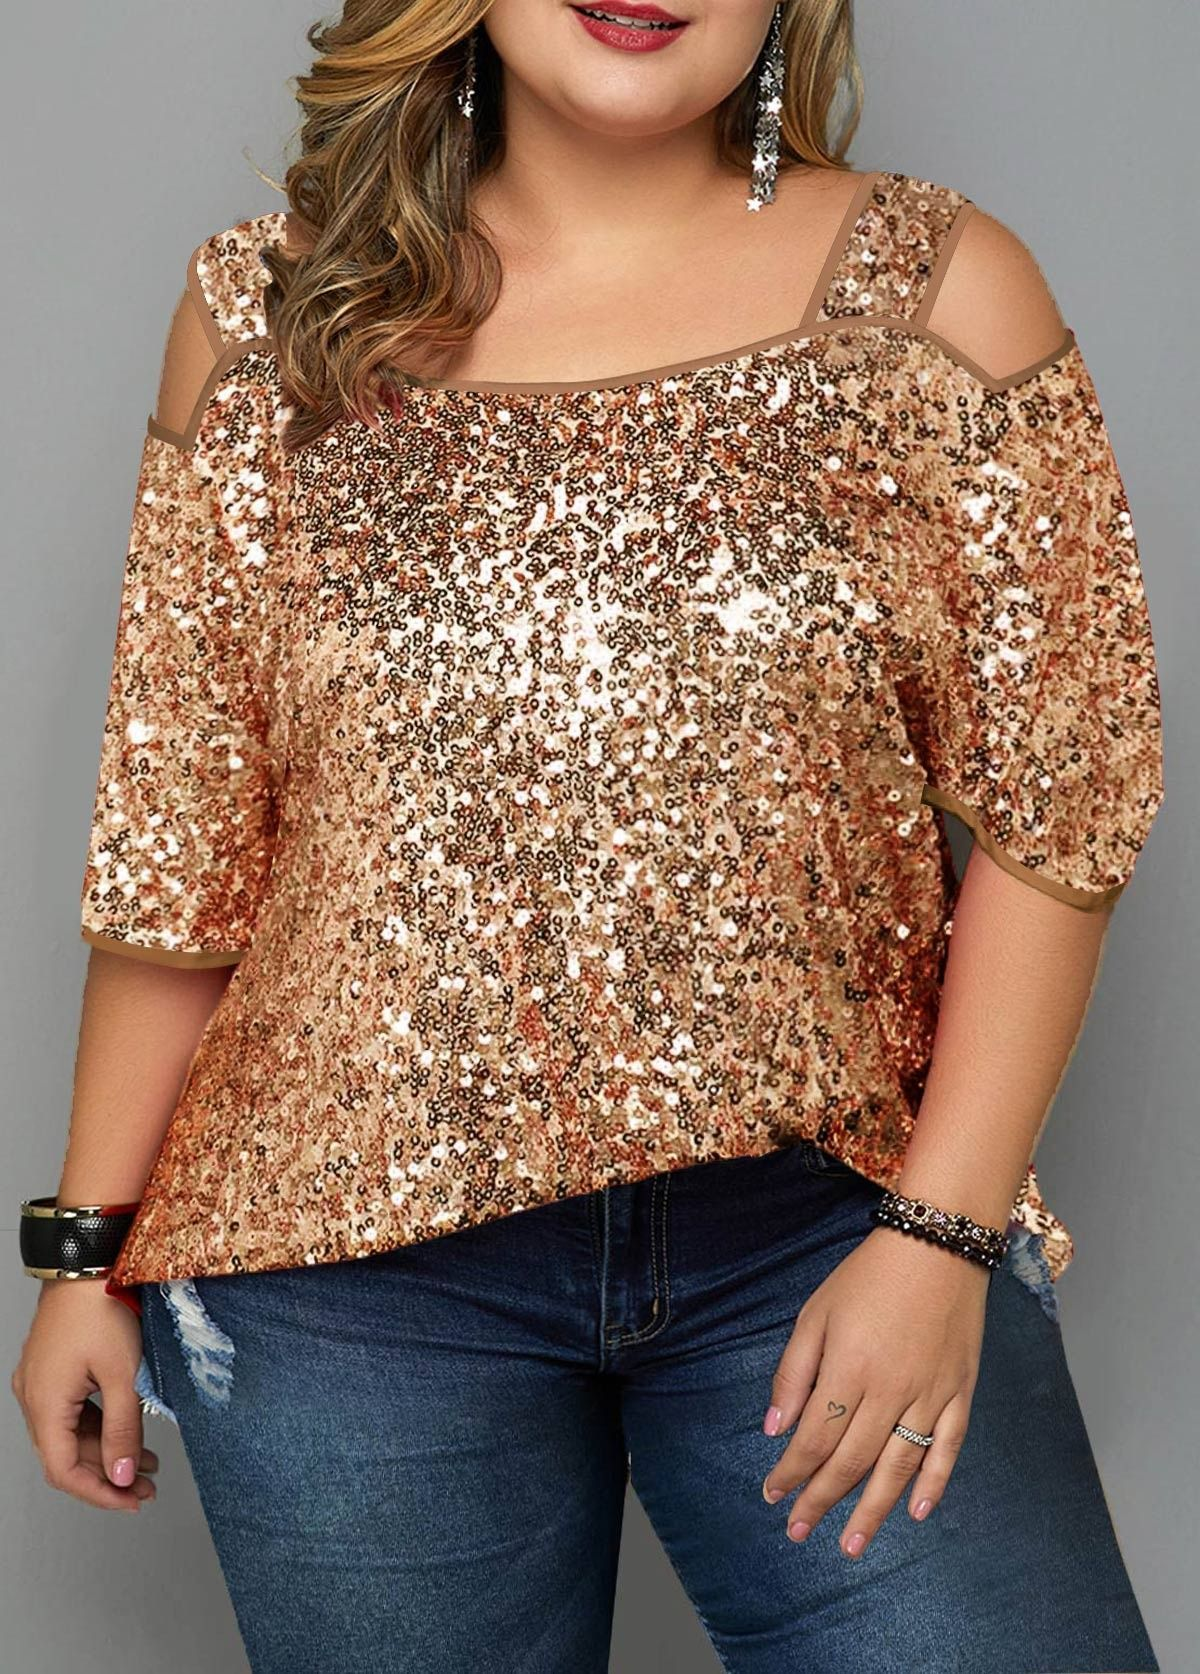 New Years Eve Outfits Plus Size New Years Eve Outfits in